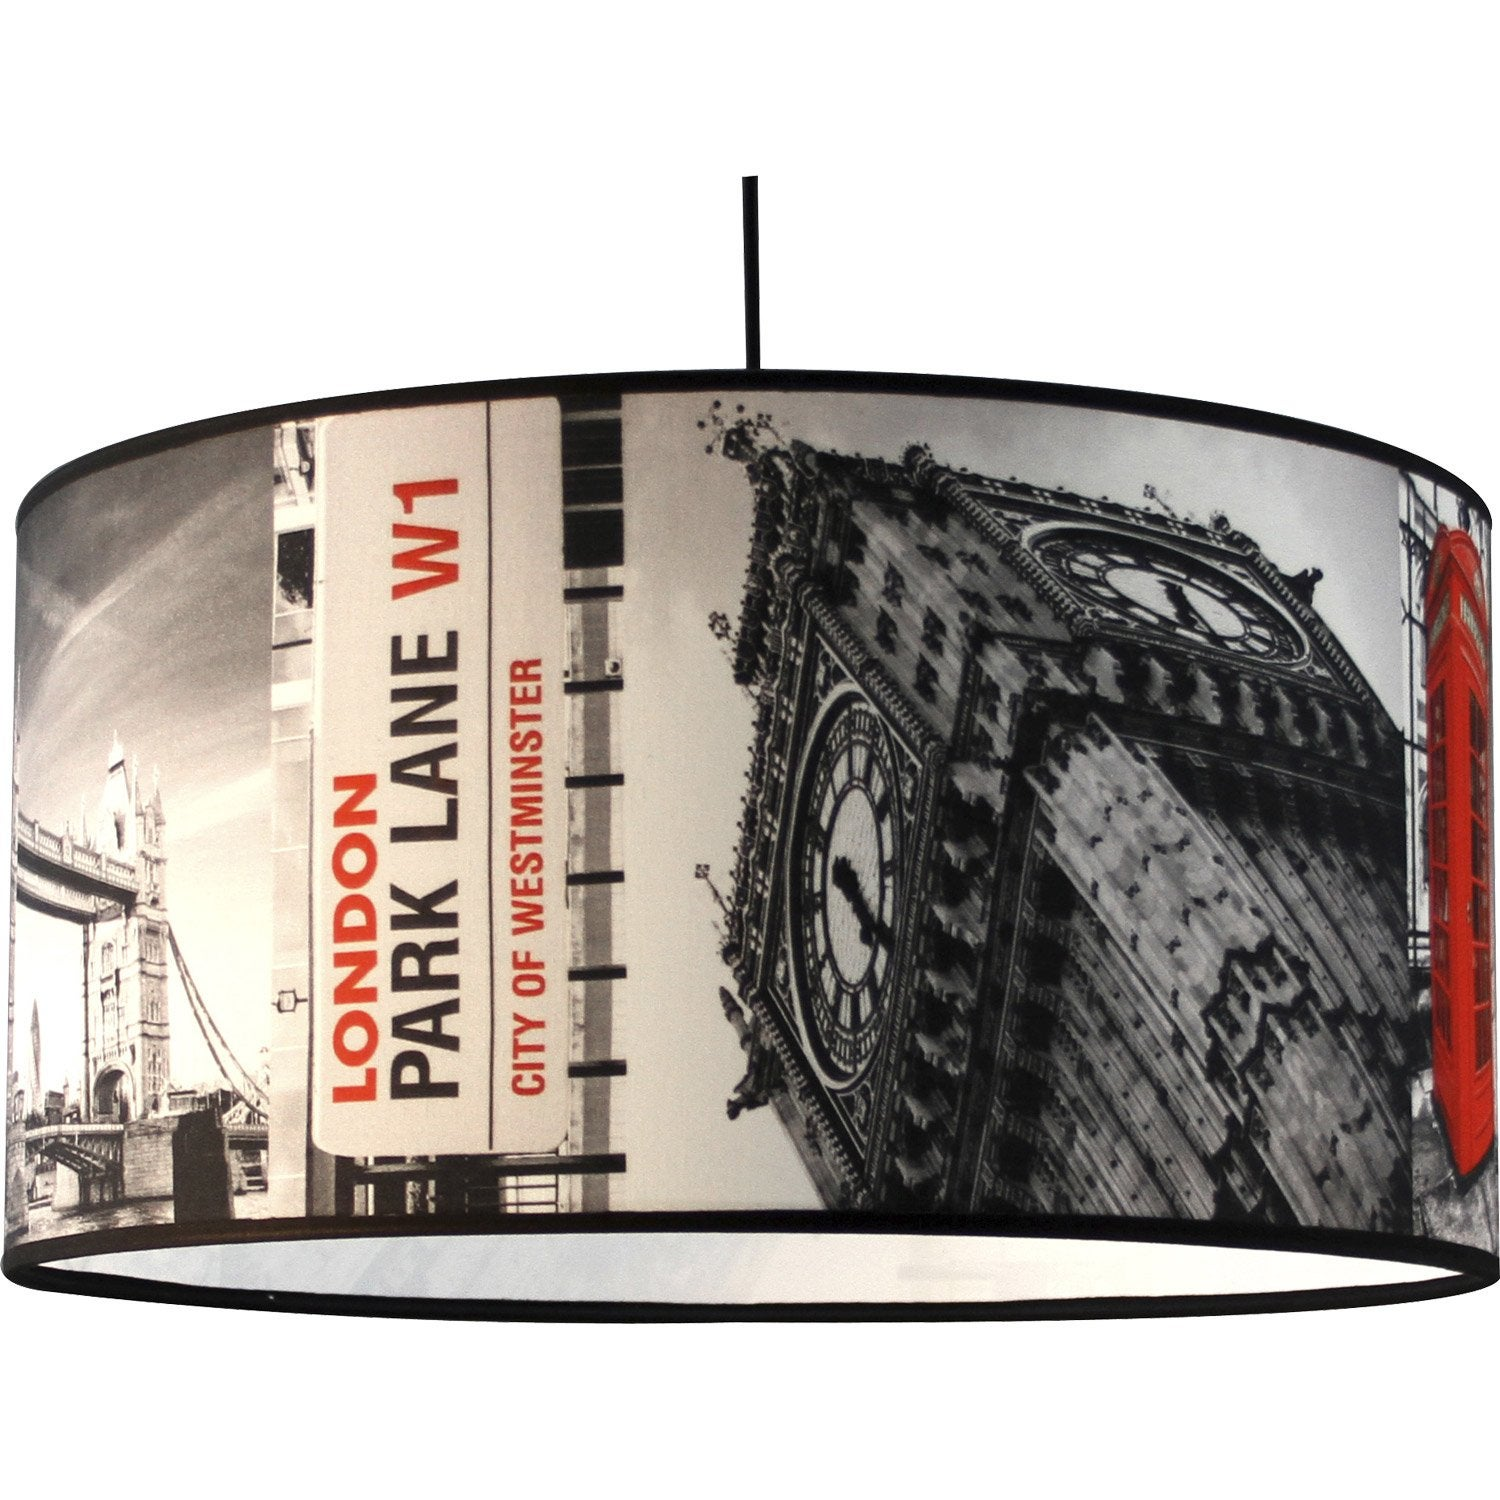 Suspension pop londres big ben tissus multicolore 1 x 60 w metropolight ler - Deco londres pas cher ...